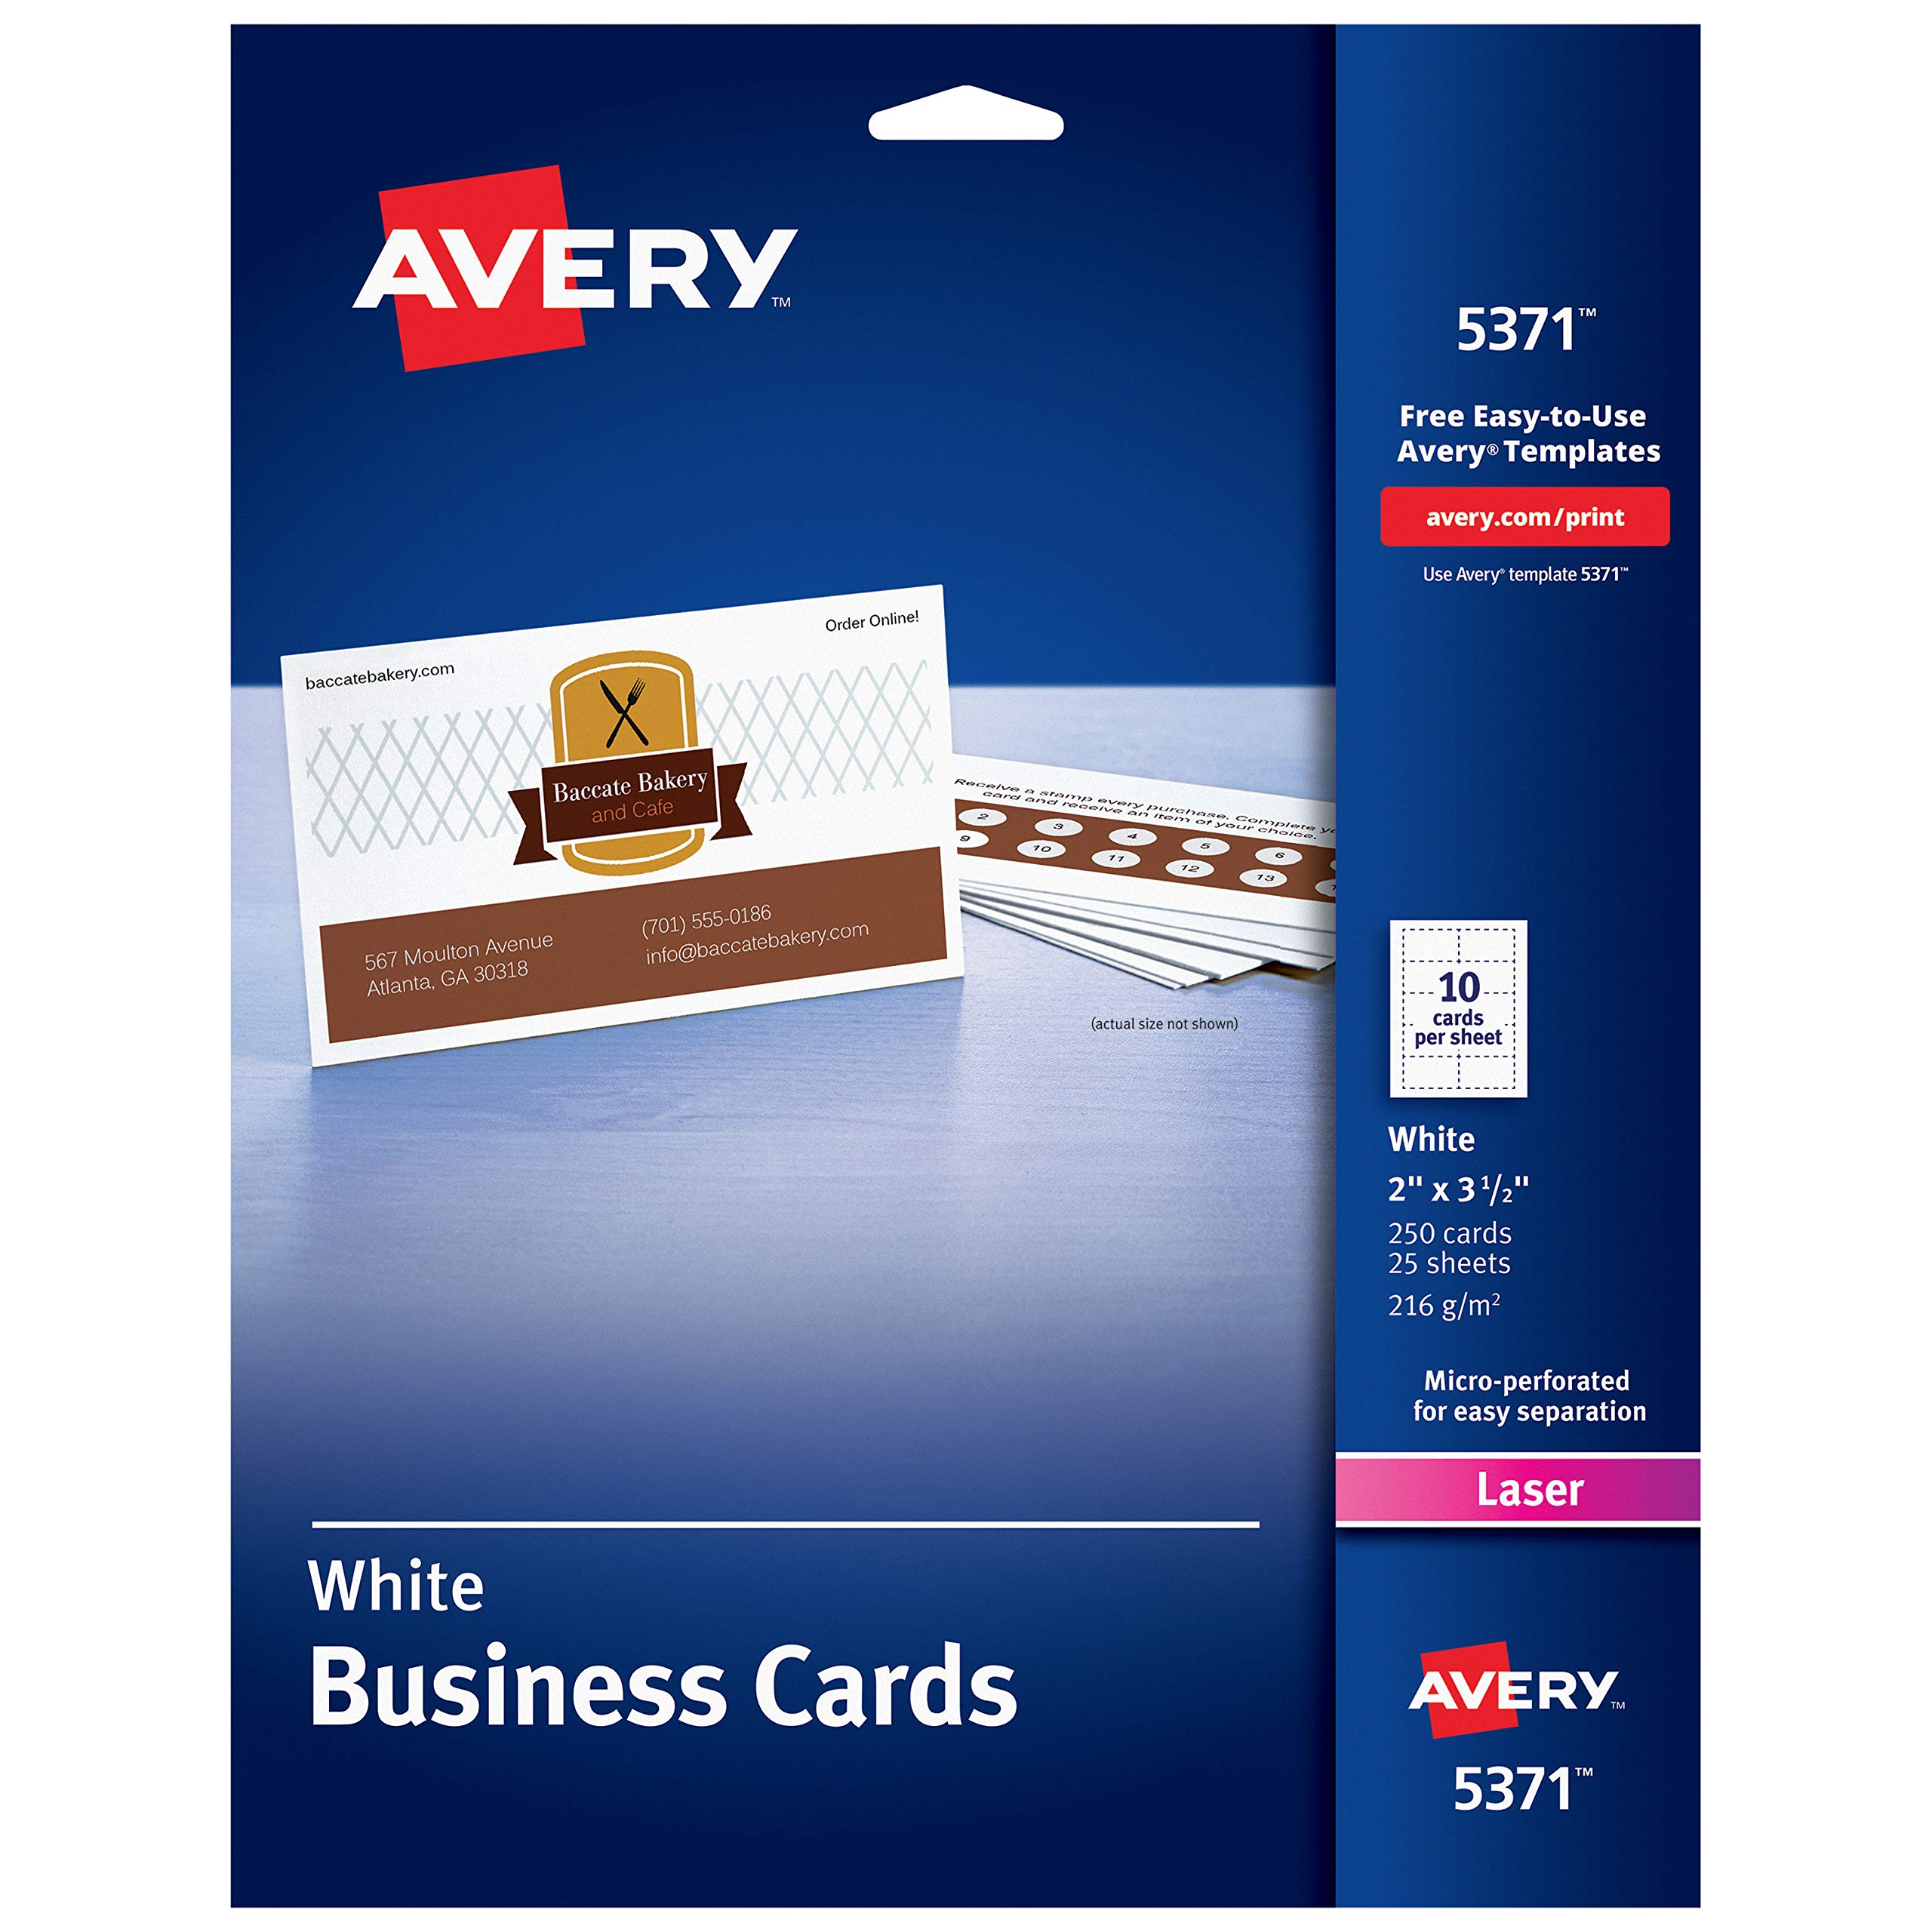 Avery Uncoated Business Cards for Laser Printers, 250 Cards per Pack, Case Pack of 5 (5371) by Avery